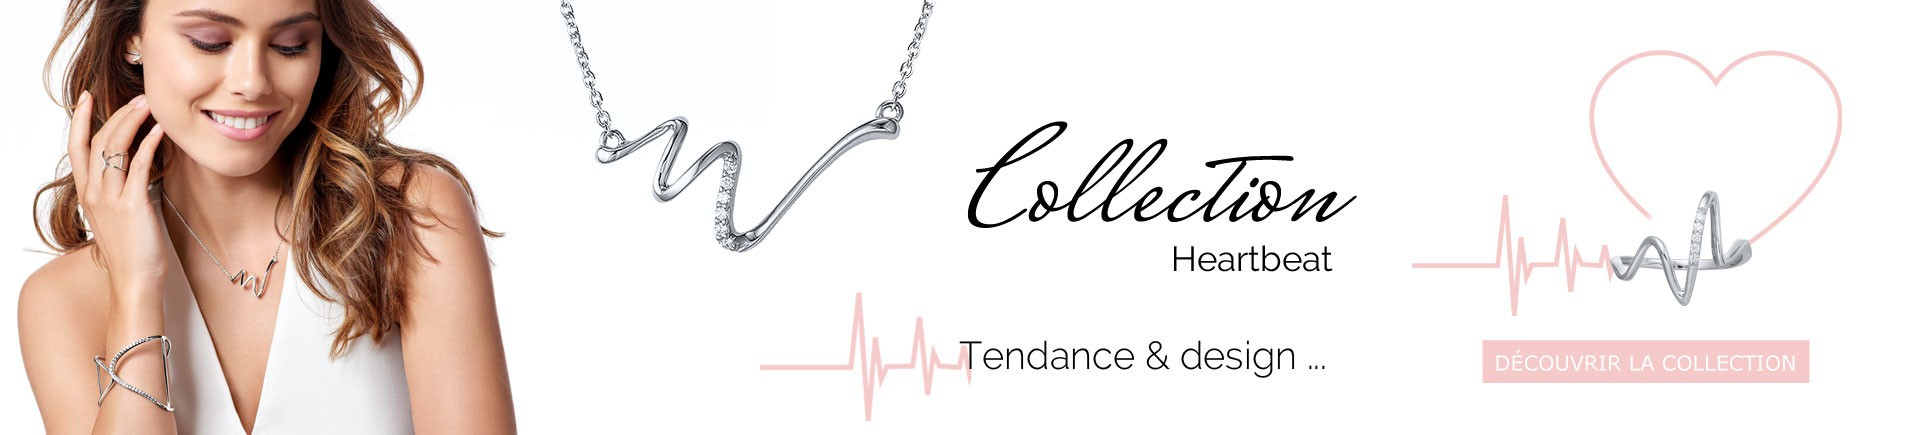 Collection tendance et design